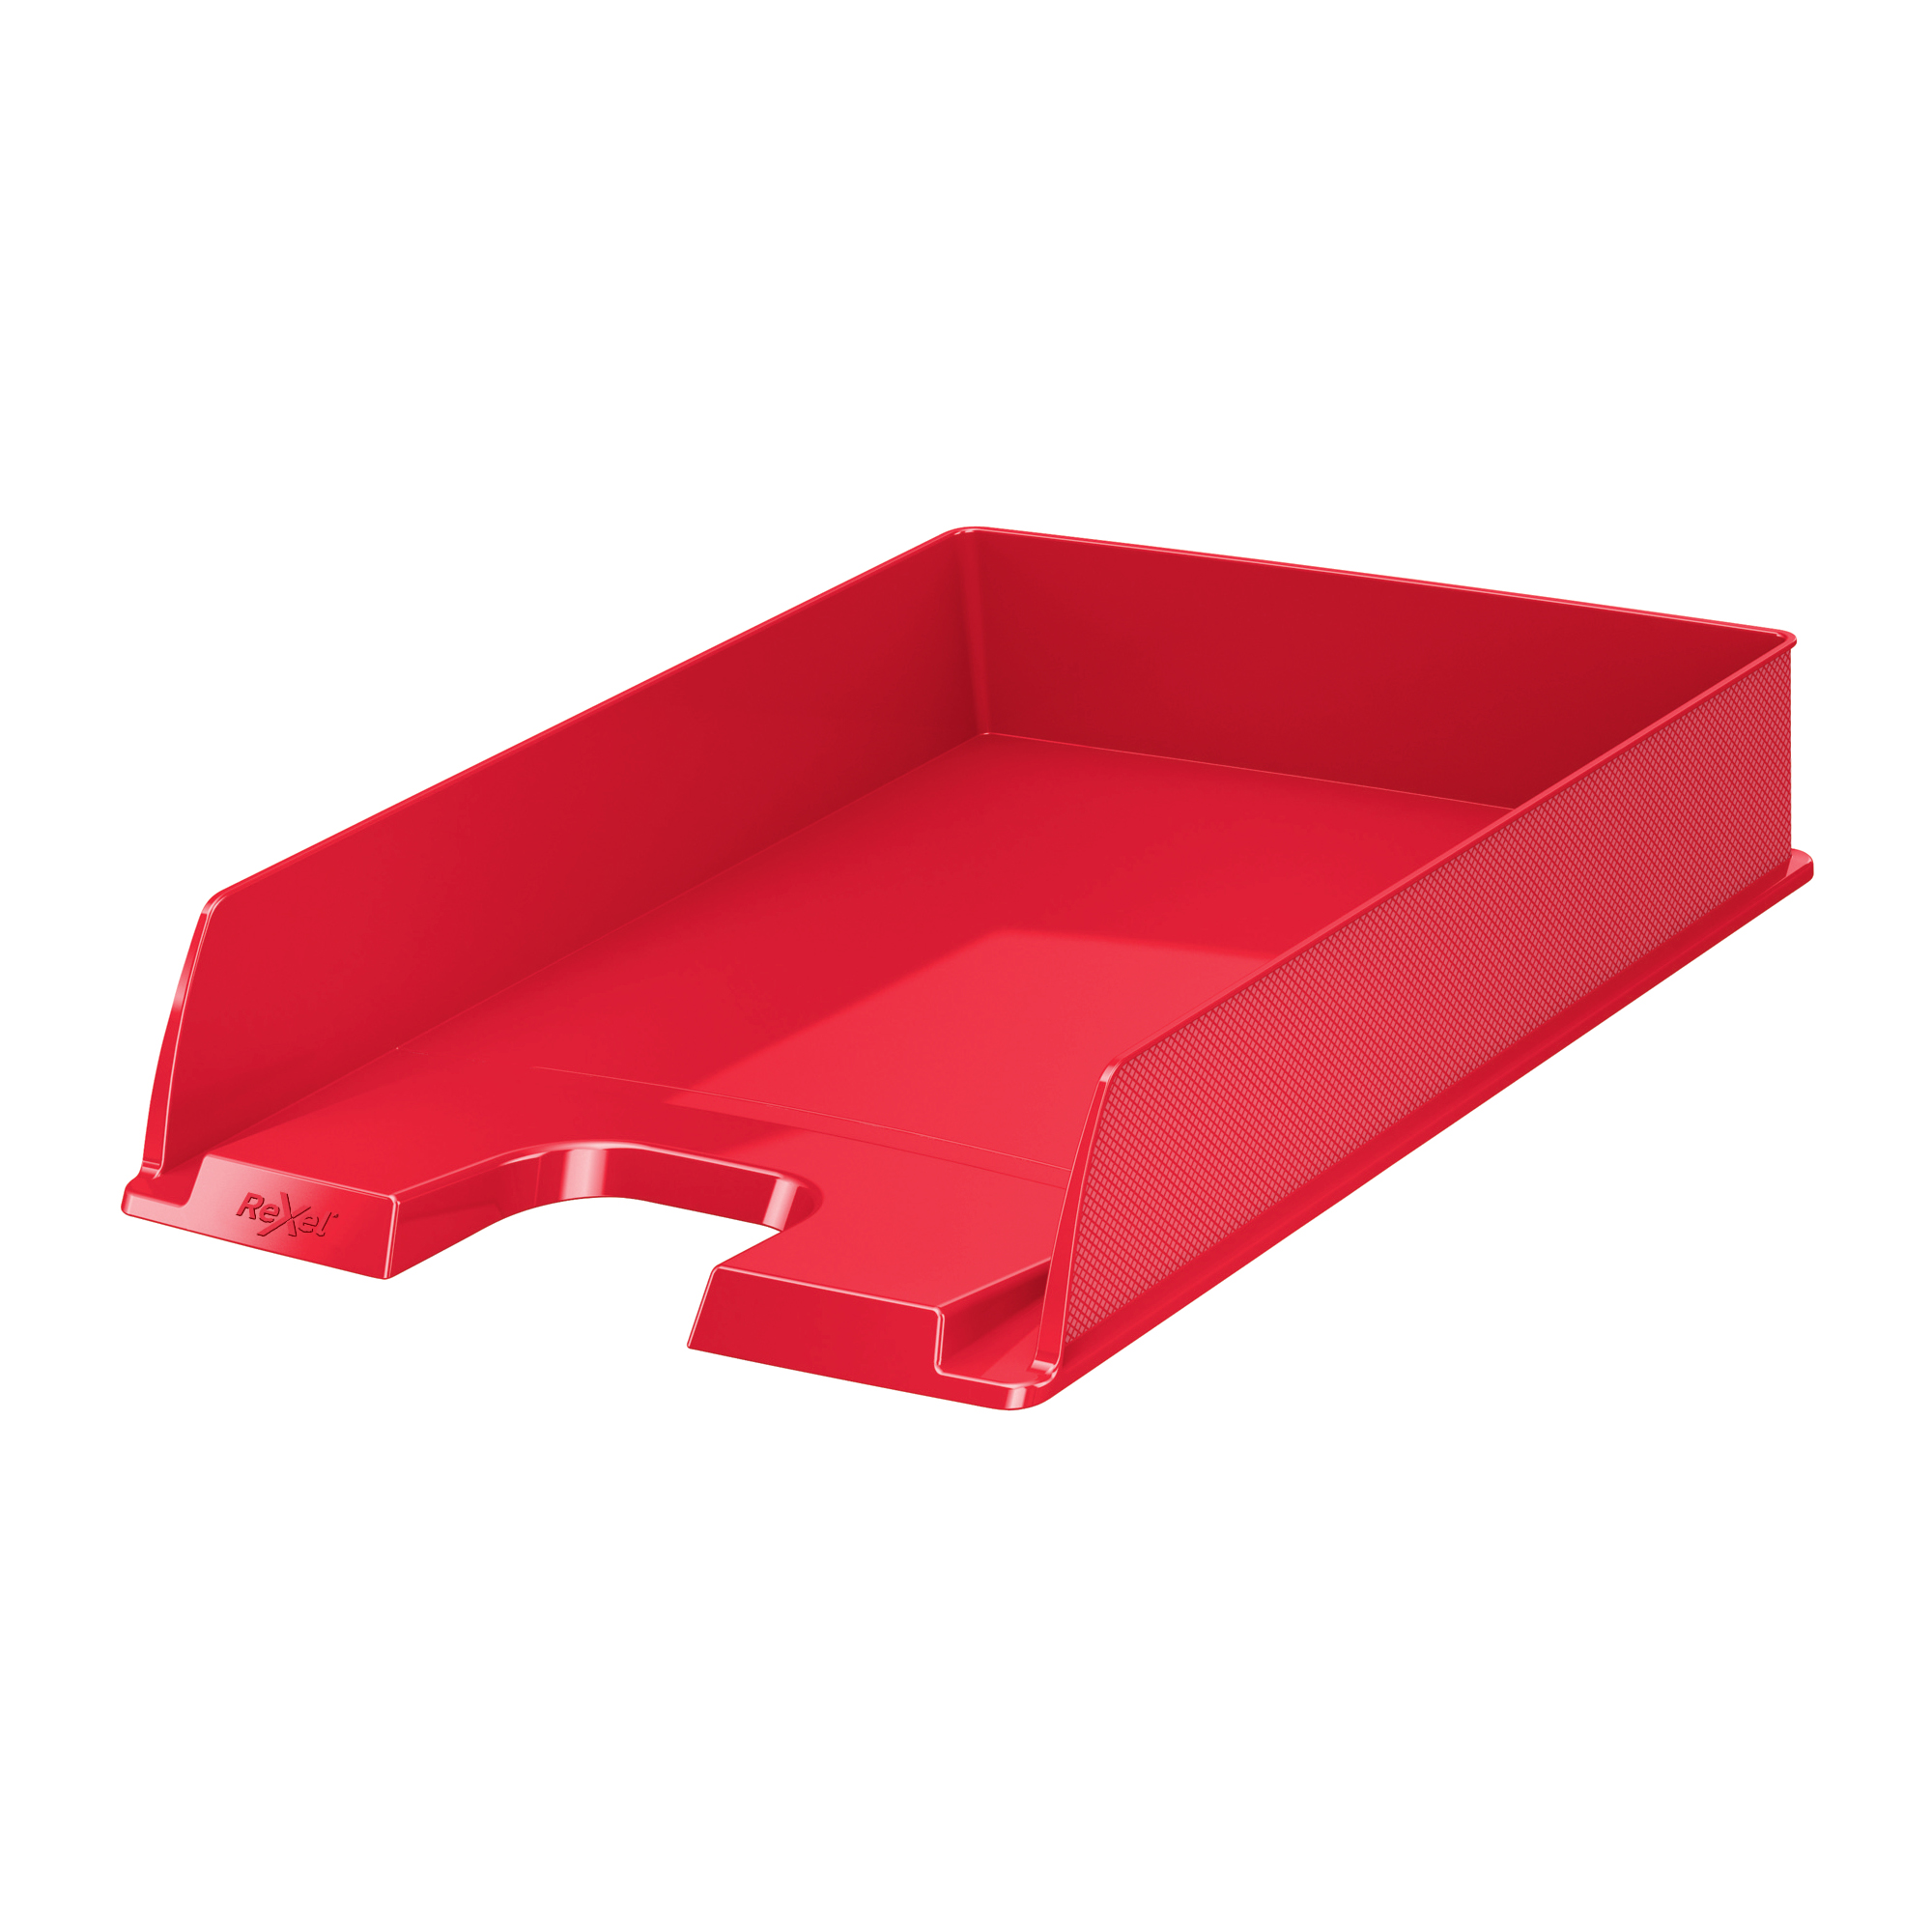 Desktop trays or organizers Rexel Choices Letter Tray PP A4 254x350x61mm Red Ref 2115599